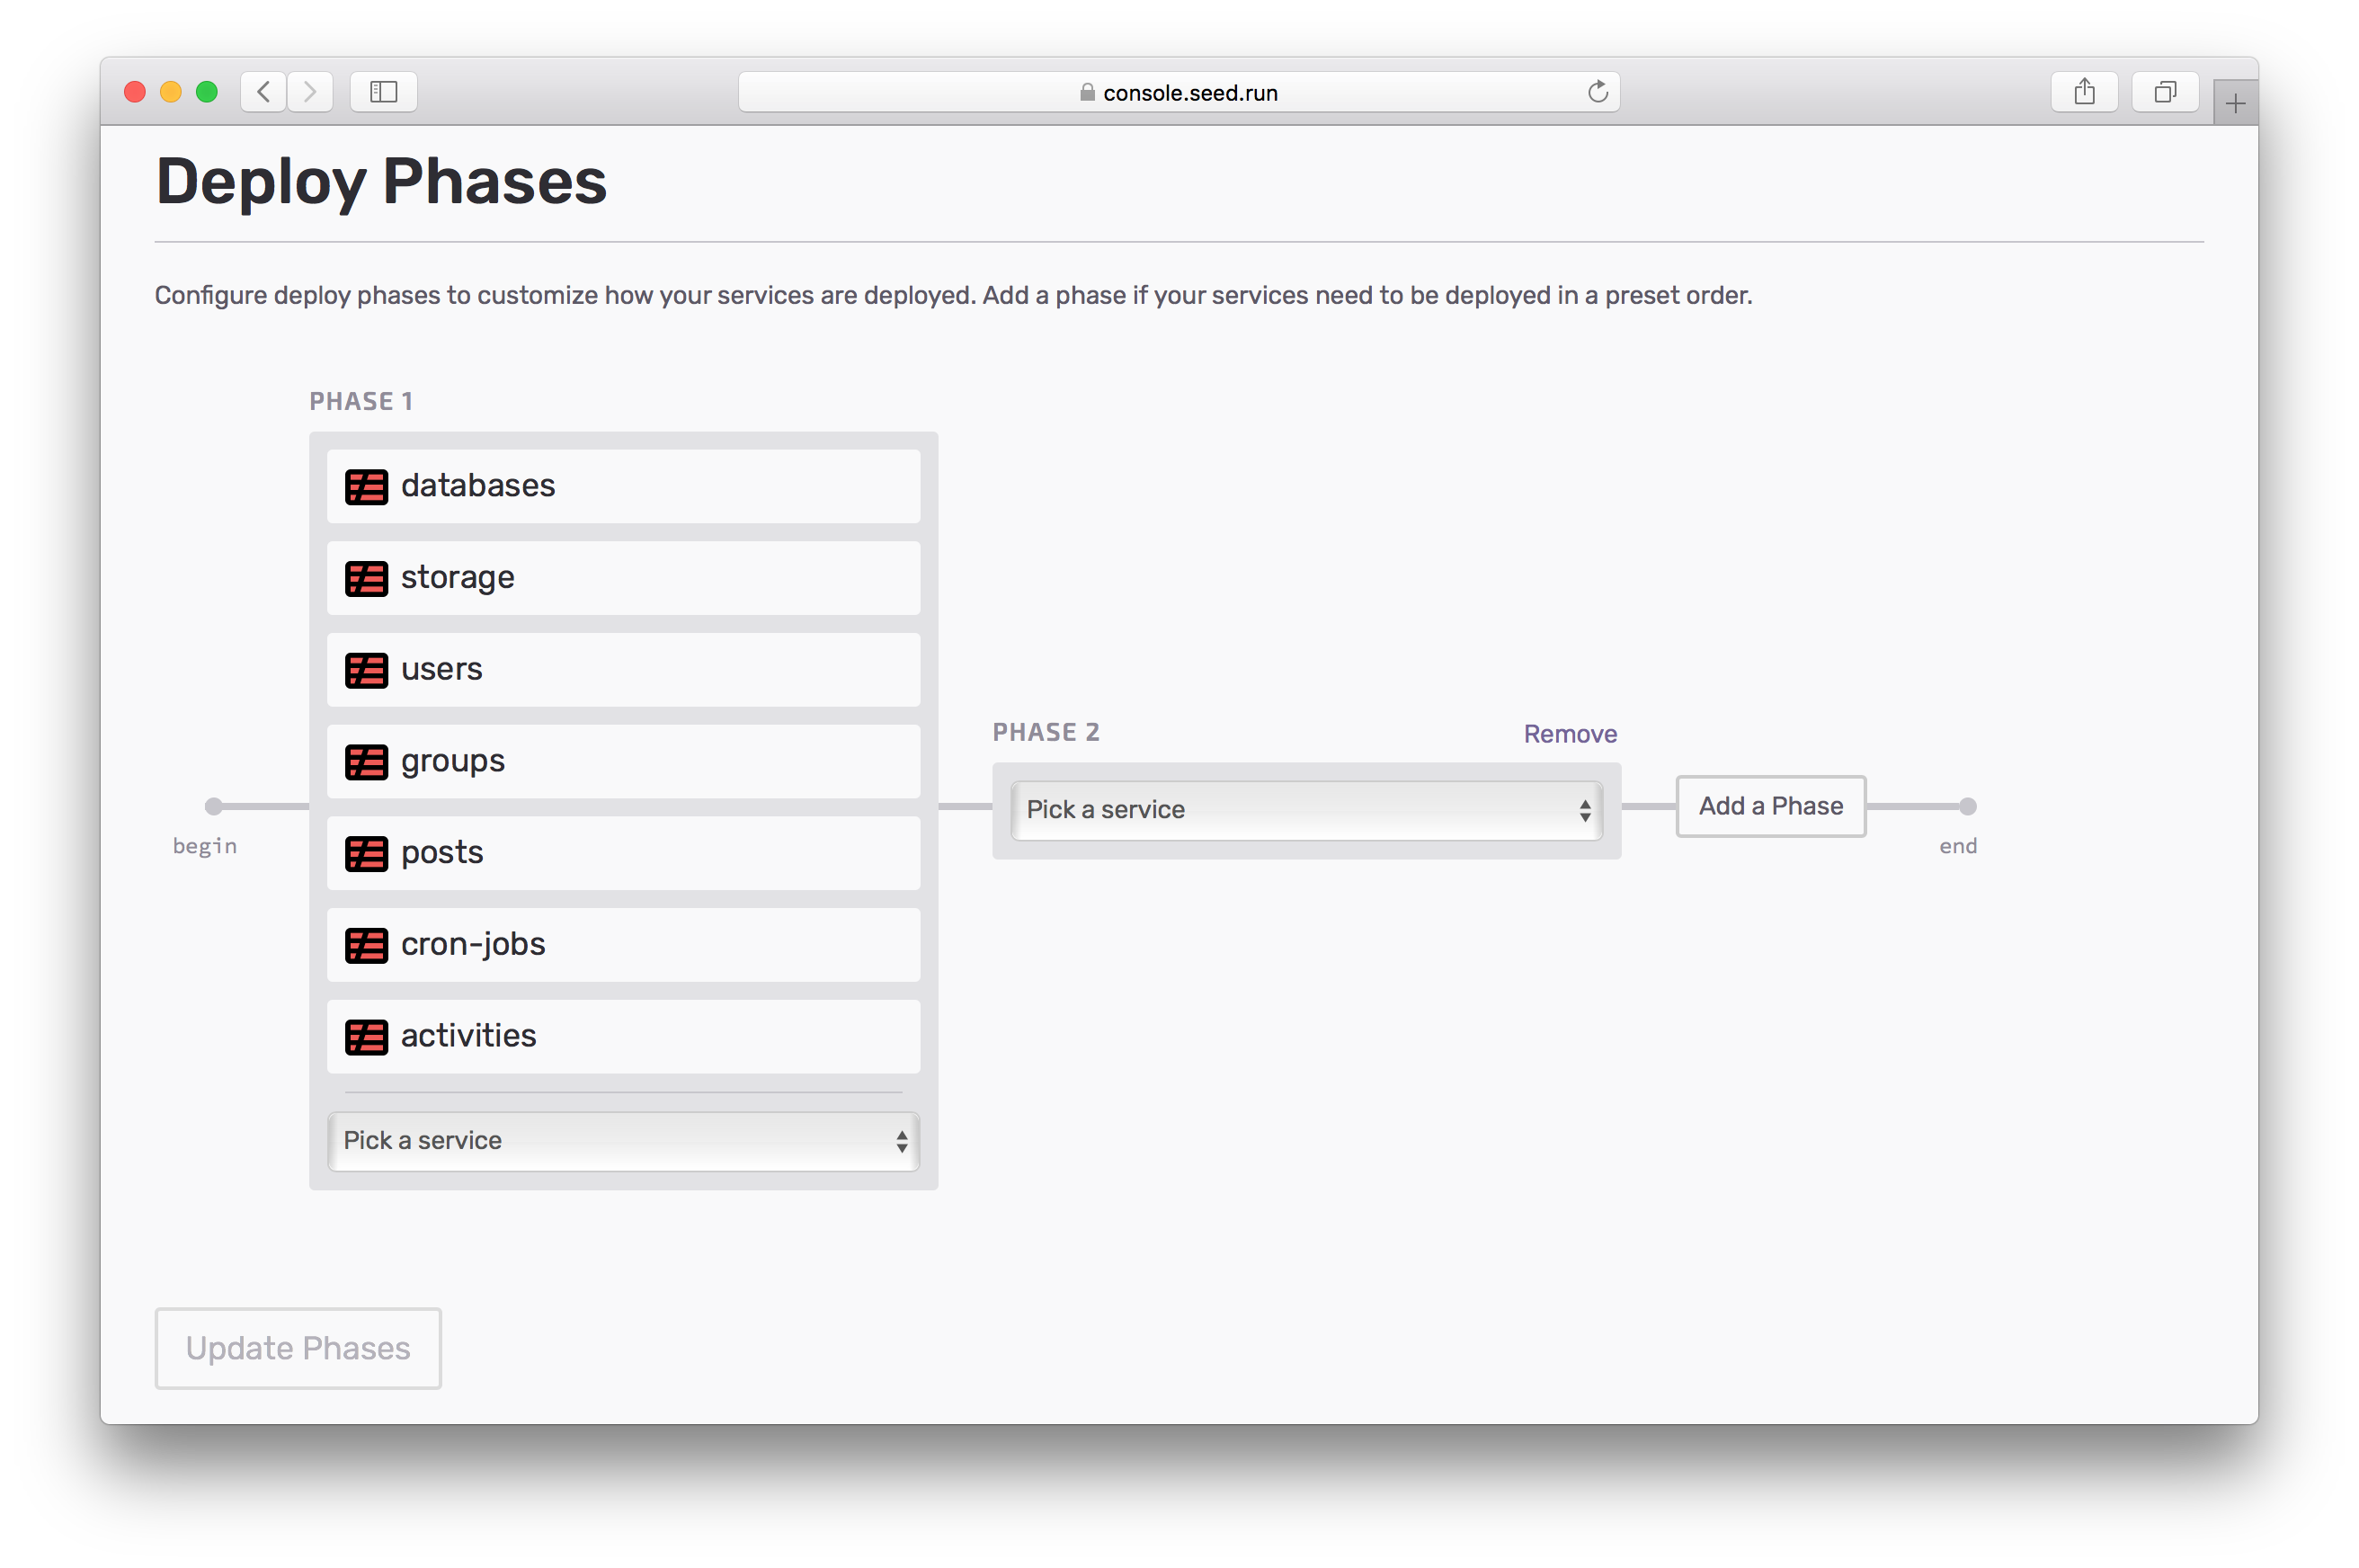 Configure new Deploy Phases